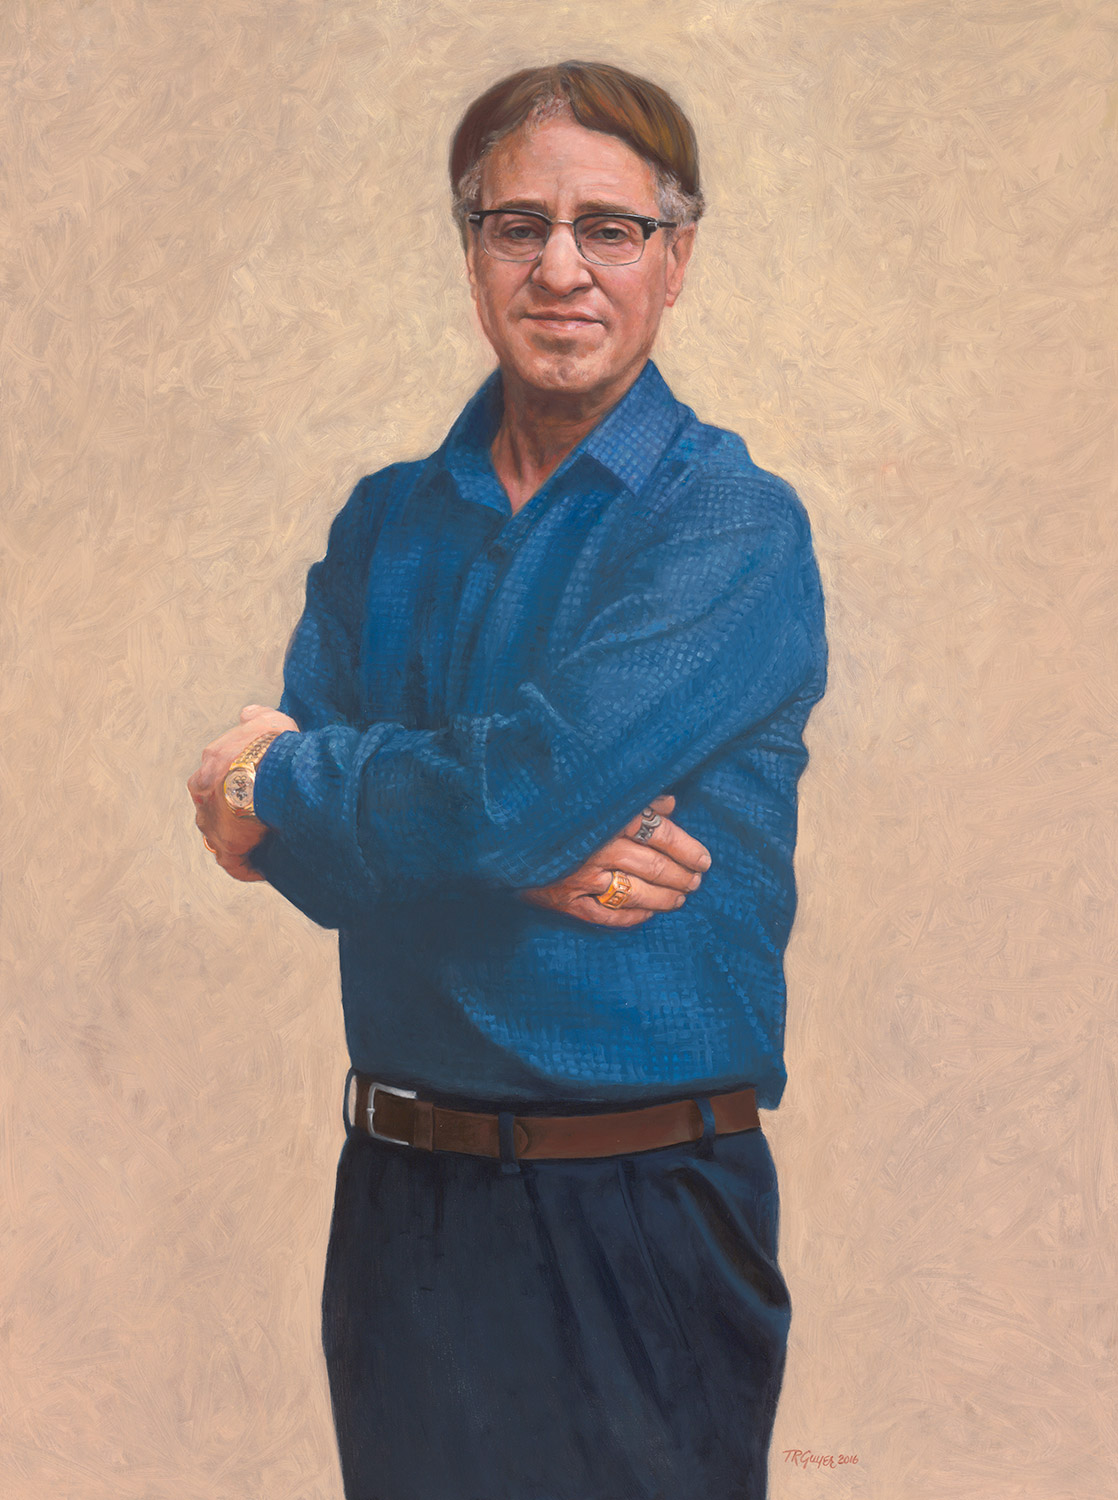 Portrait of Ray Kurzweil